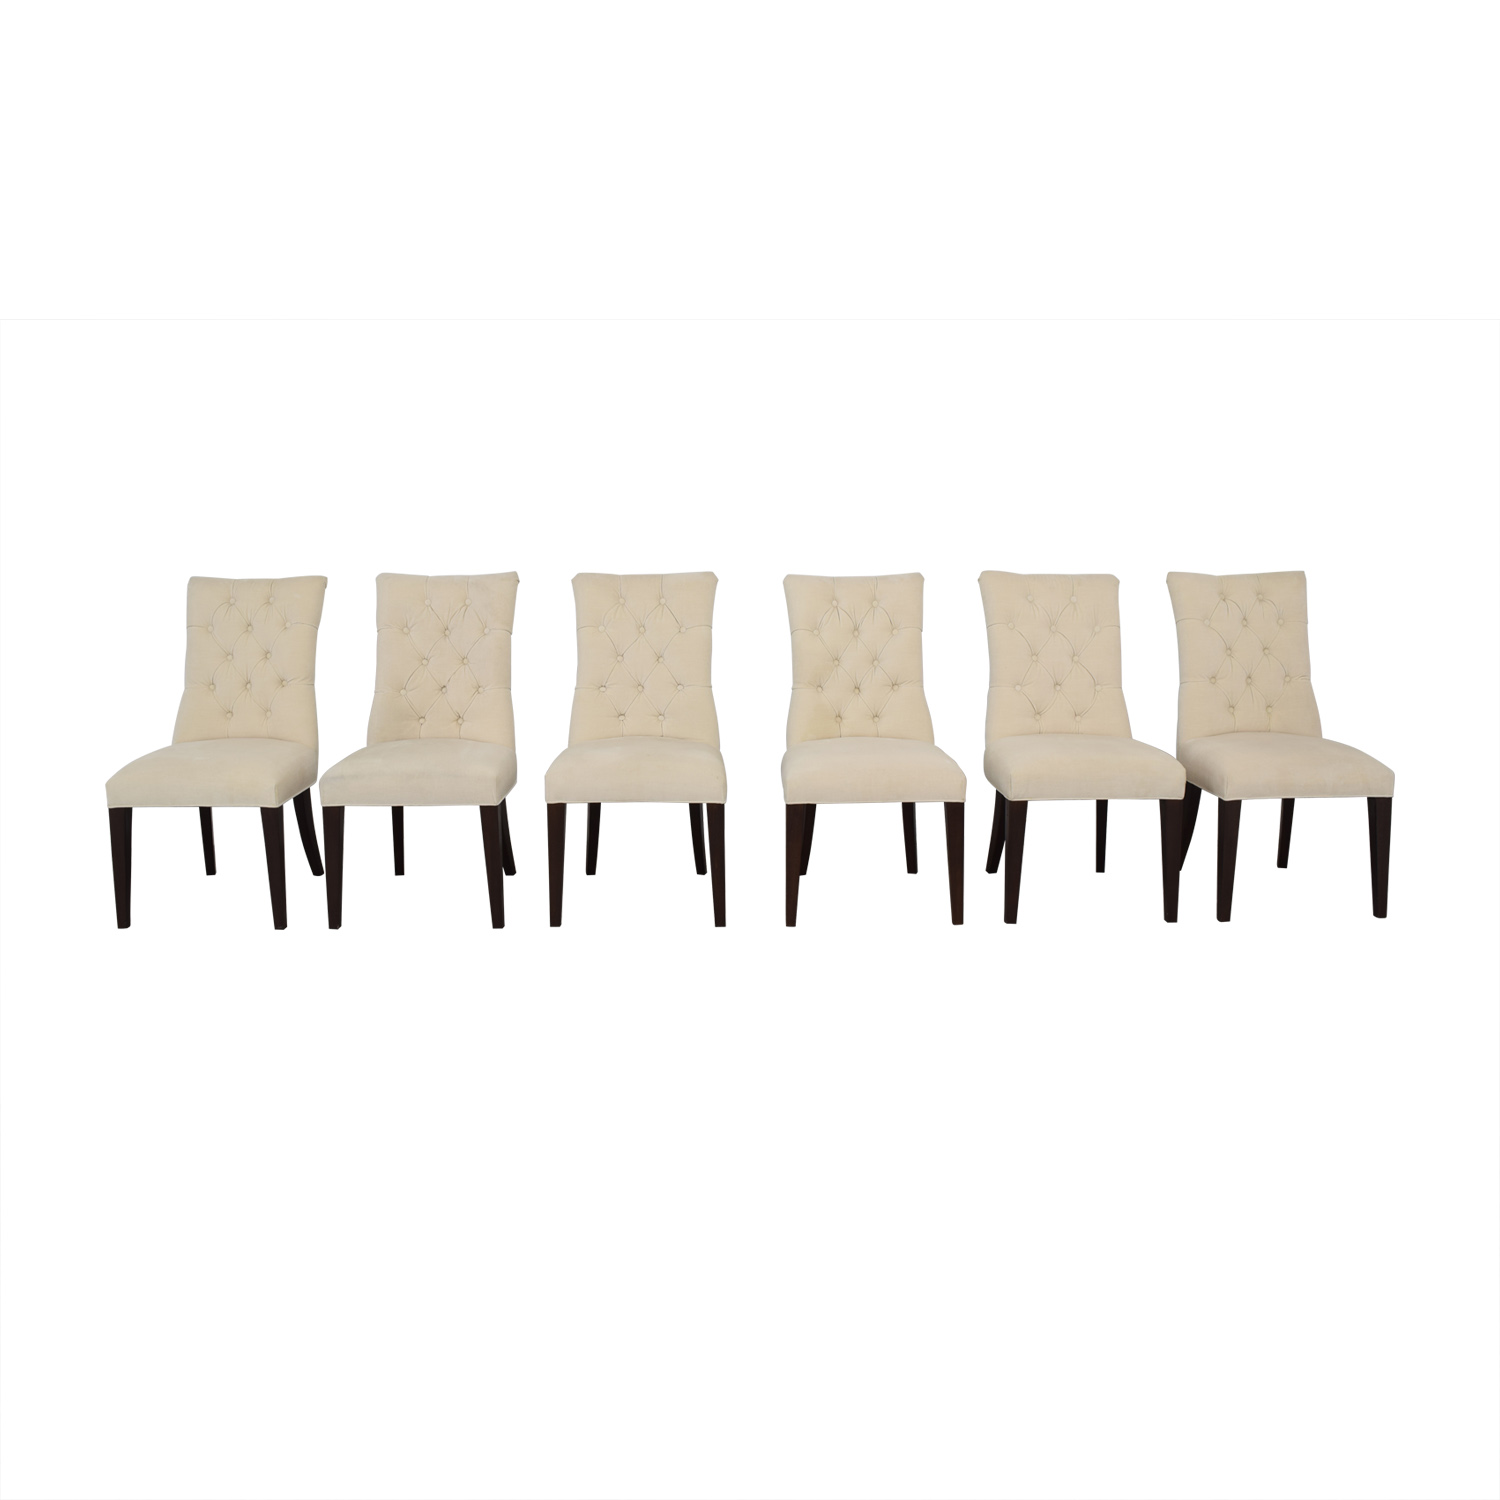 buy Restoration Hardware Martine Tufted Beige Dining Chairs Restoration Hardware